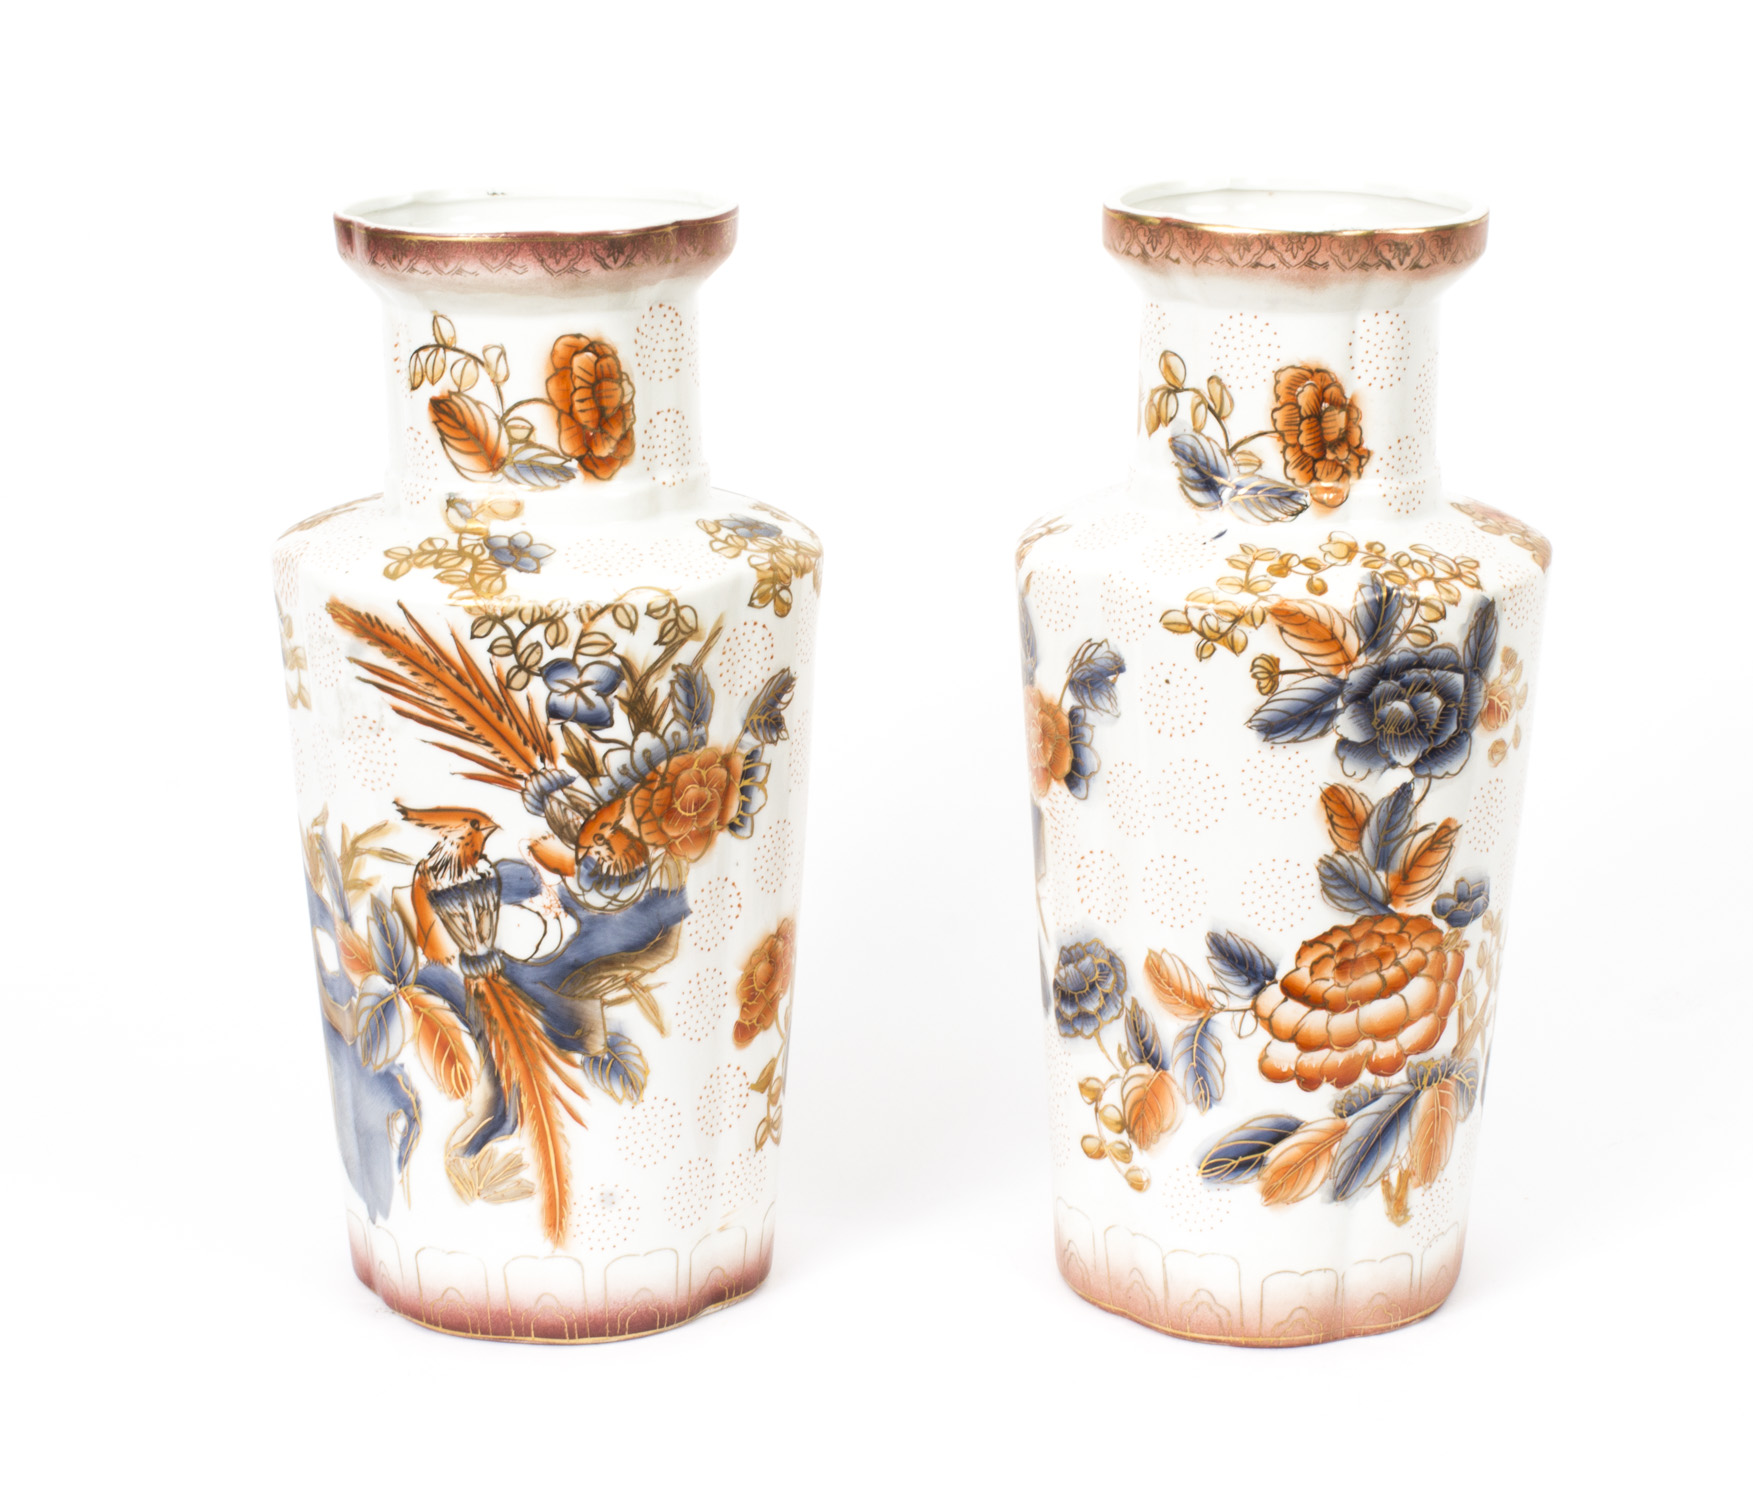 dating japanese imari porcelain The hard facts of life are that the vast majority of all authentic, antique japanese imari is completely unmarked occasionally, there may be some sort of symbolic mark that may mean something .